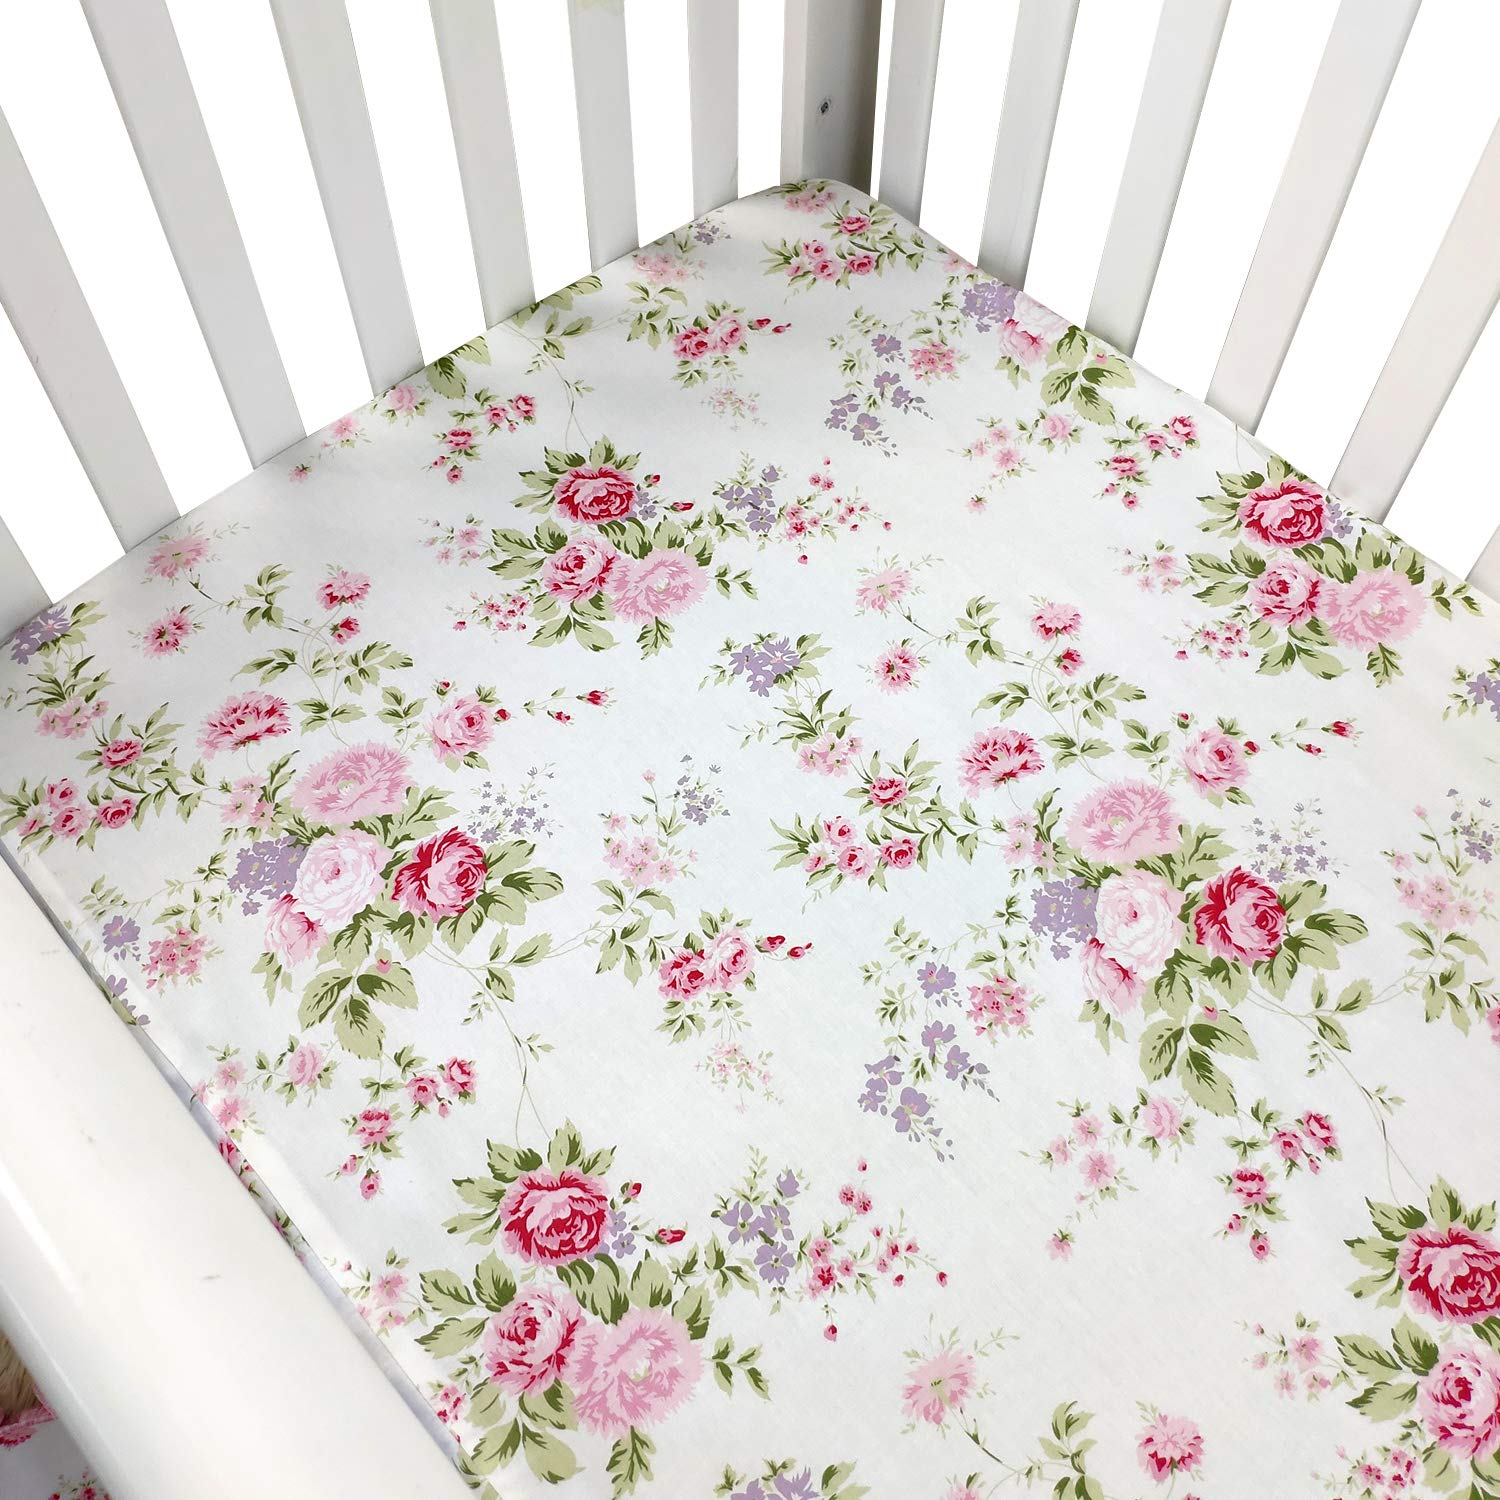 Brandream Crib Sheets Girl Fitted Crib Sheets Floral Portable Crib Mattress Topper for Baby Girls 100% Soft Breathable Cotton, Pink